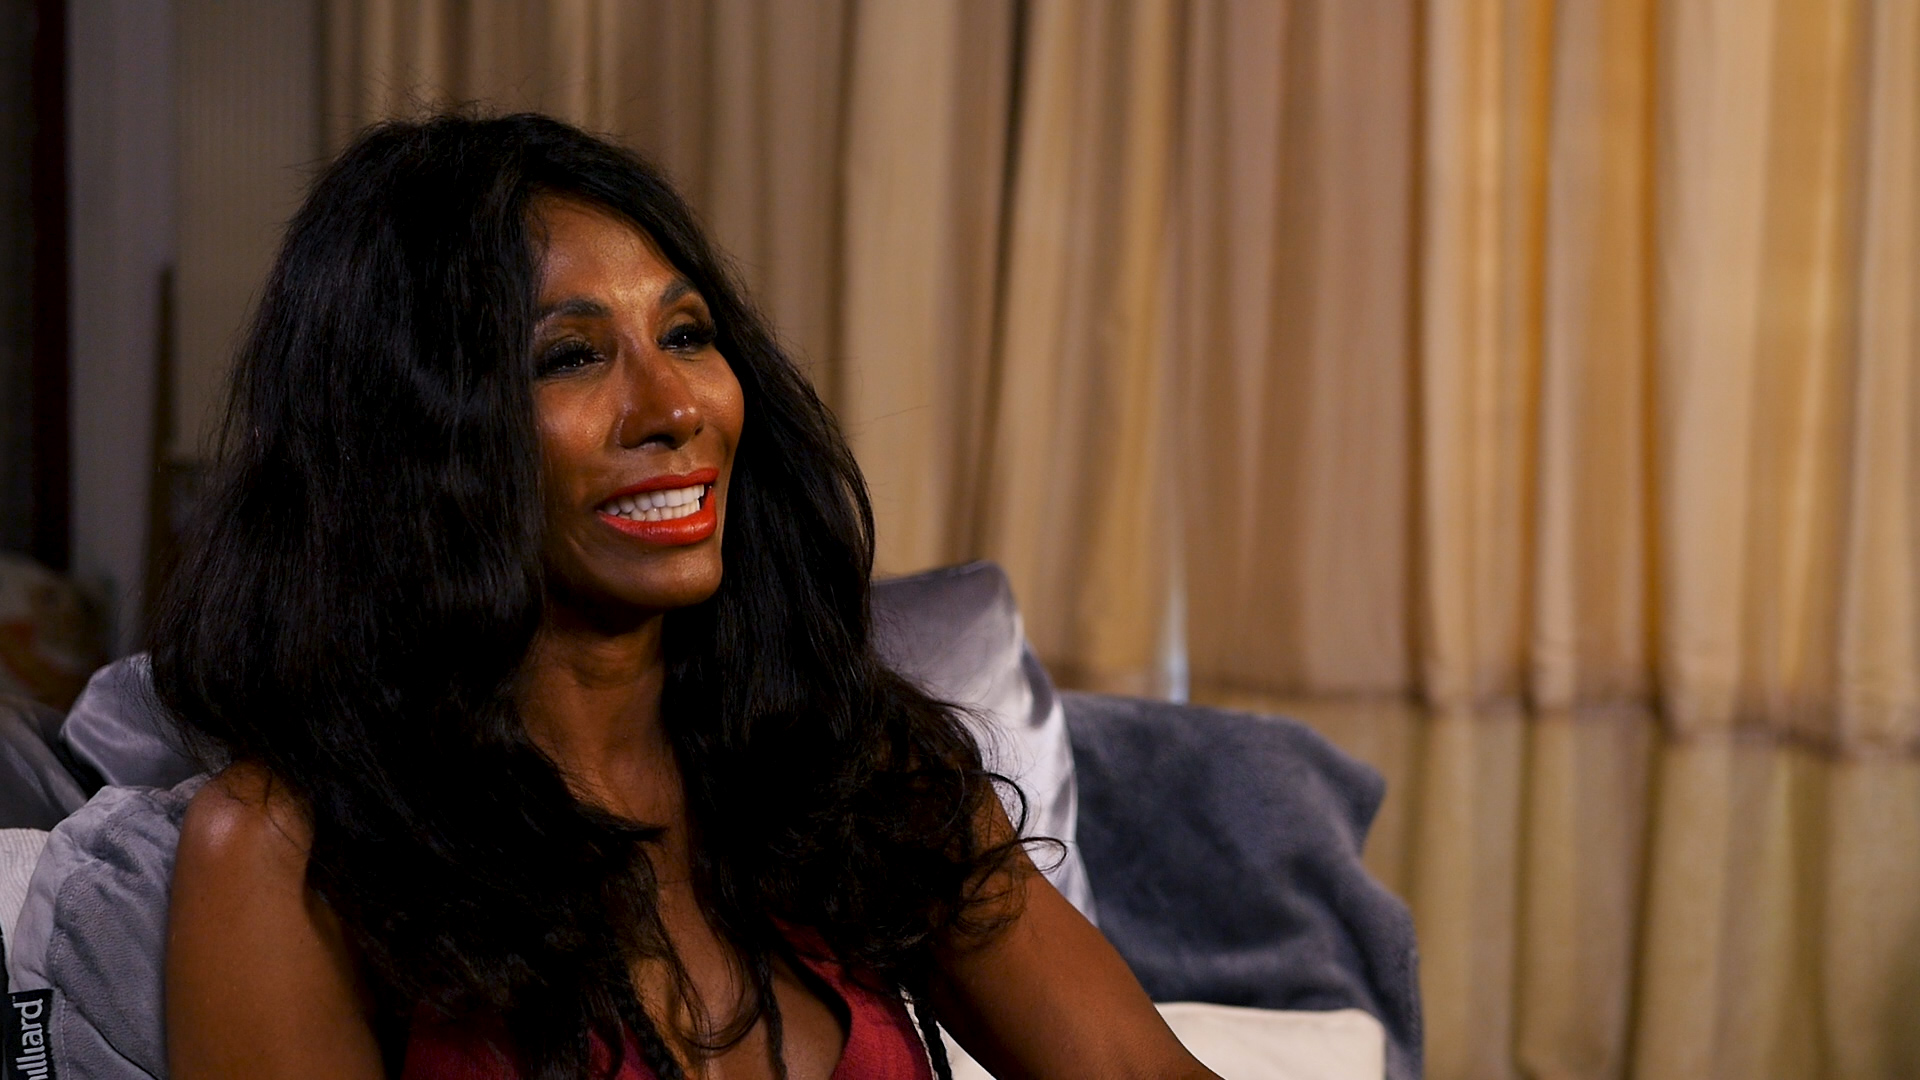 Sinitta's Vook - Here you will be able to hear my life story, my anecdotes, my successes, my failures - the good times, the bad times, and everything in between!